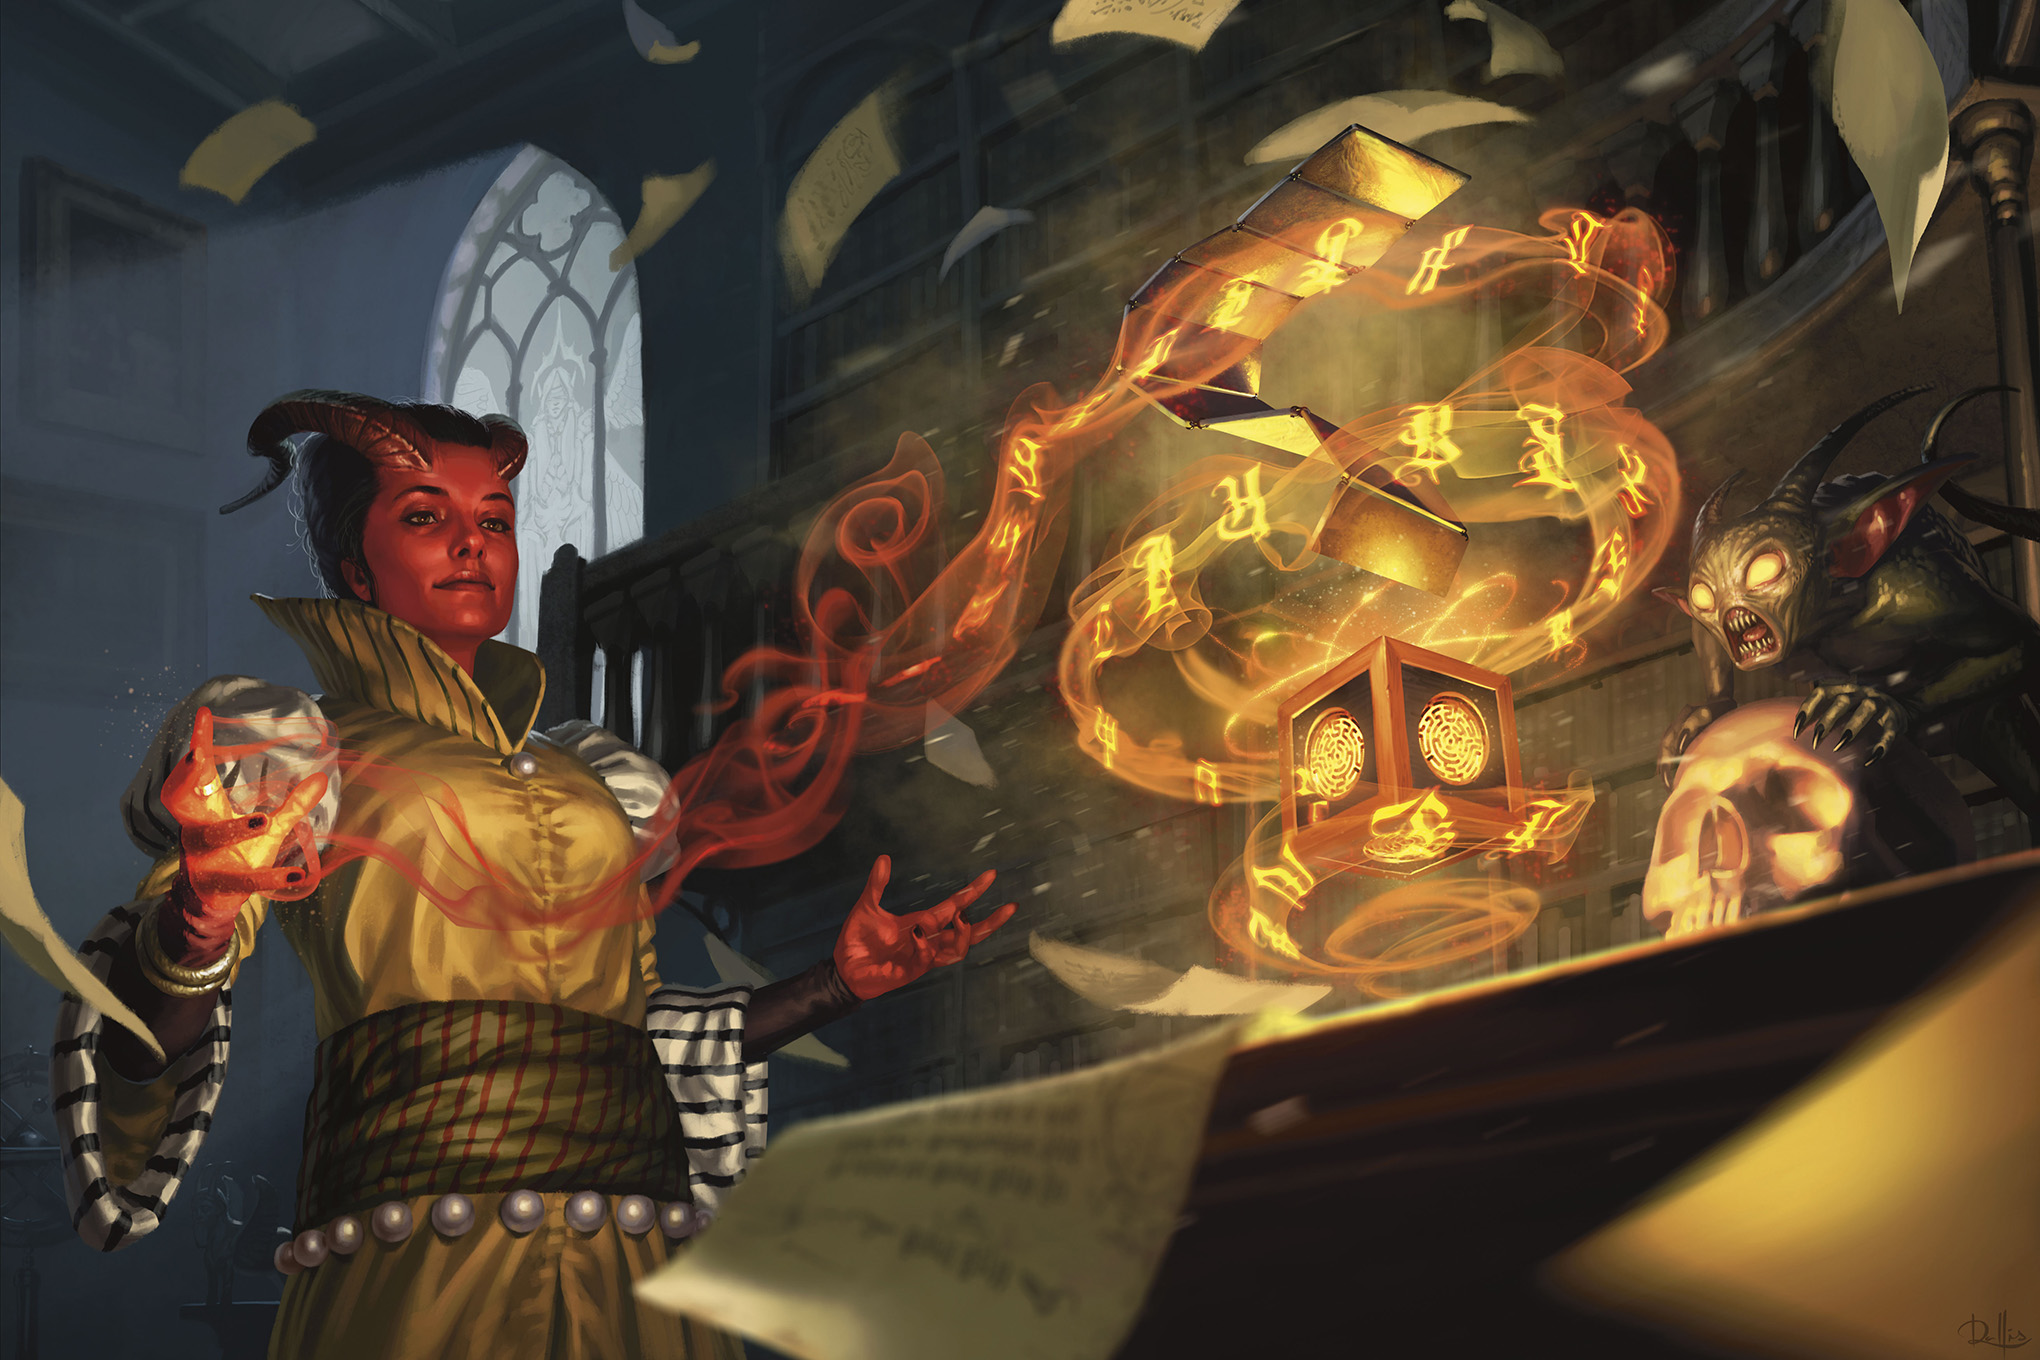 The contents of Thavius Kreeg's mysterious puzzle box are revealed. A tiefling casts a spell on the small, gilded item while a demon looks on. From Wizards of the Coast's Baldur's Gate: Descent Into Avernus.